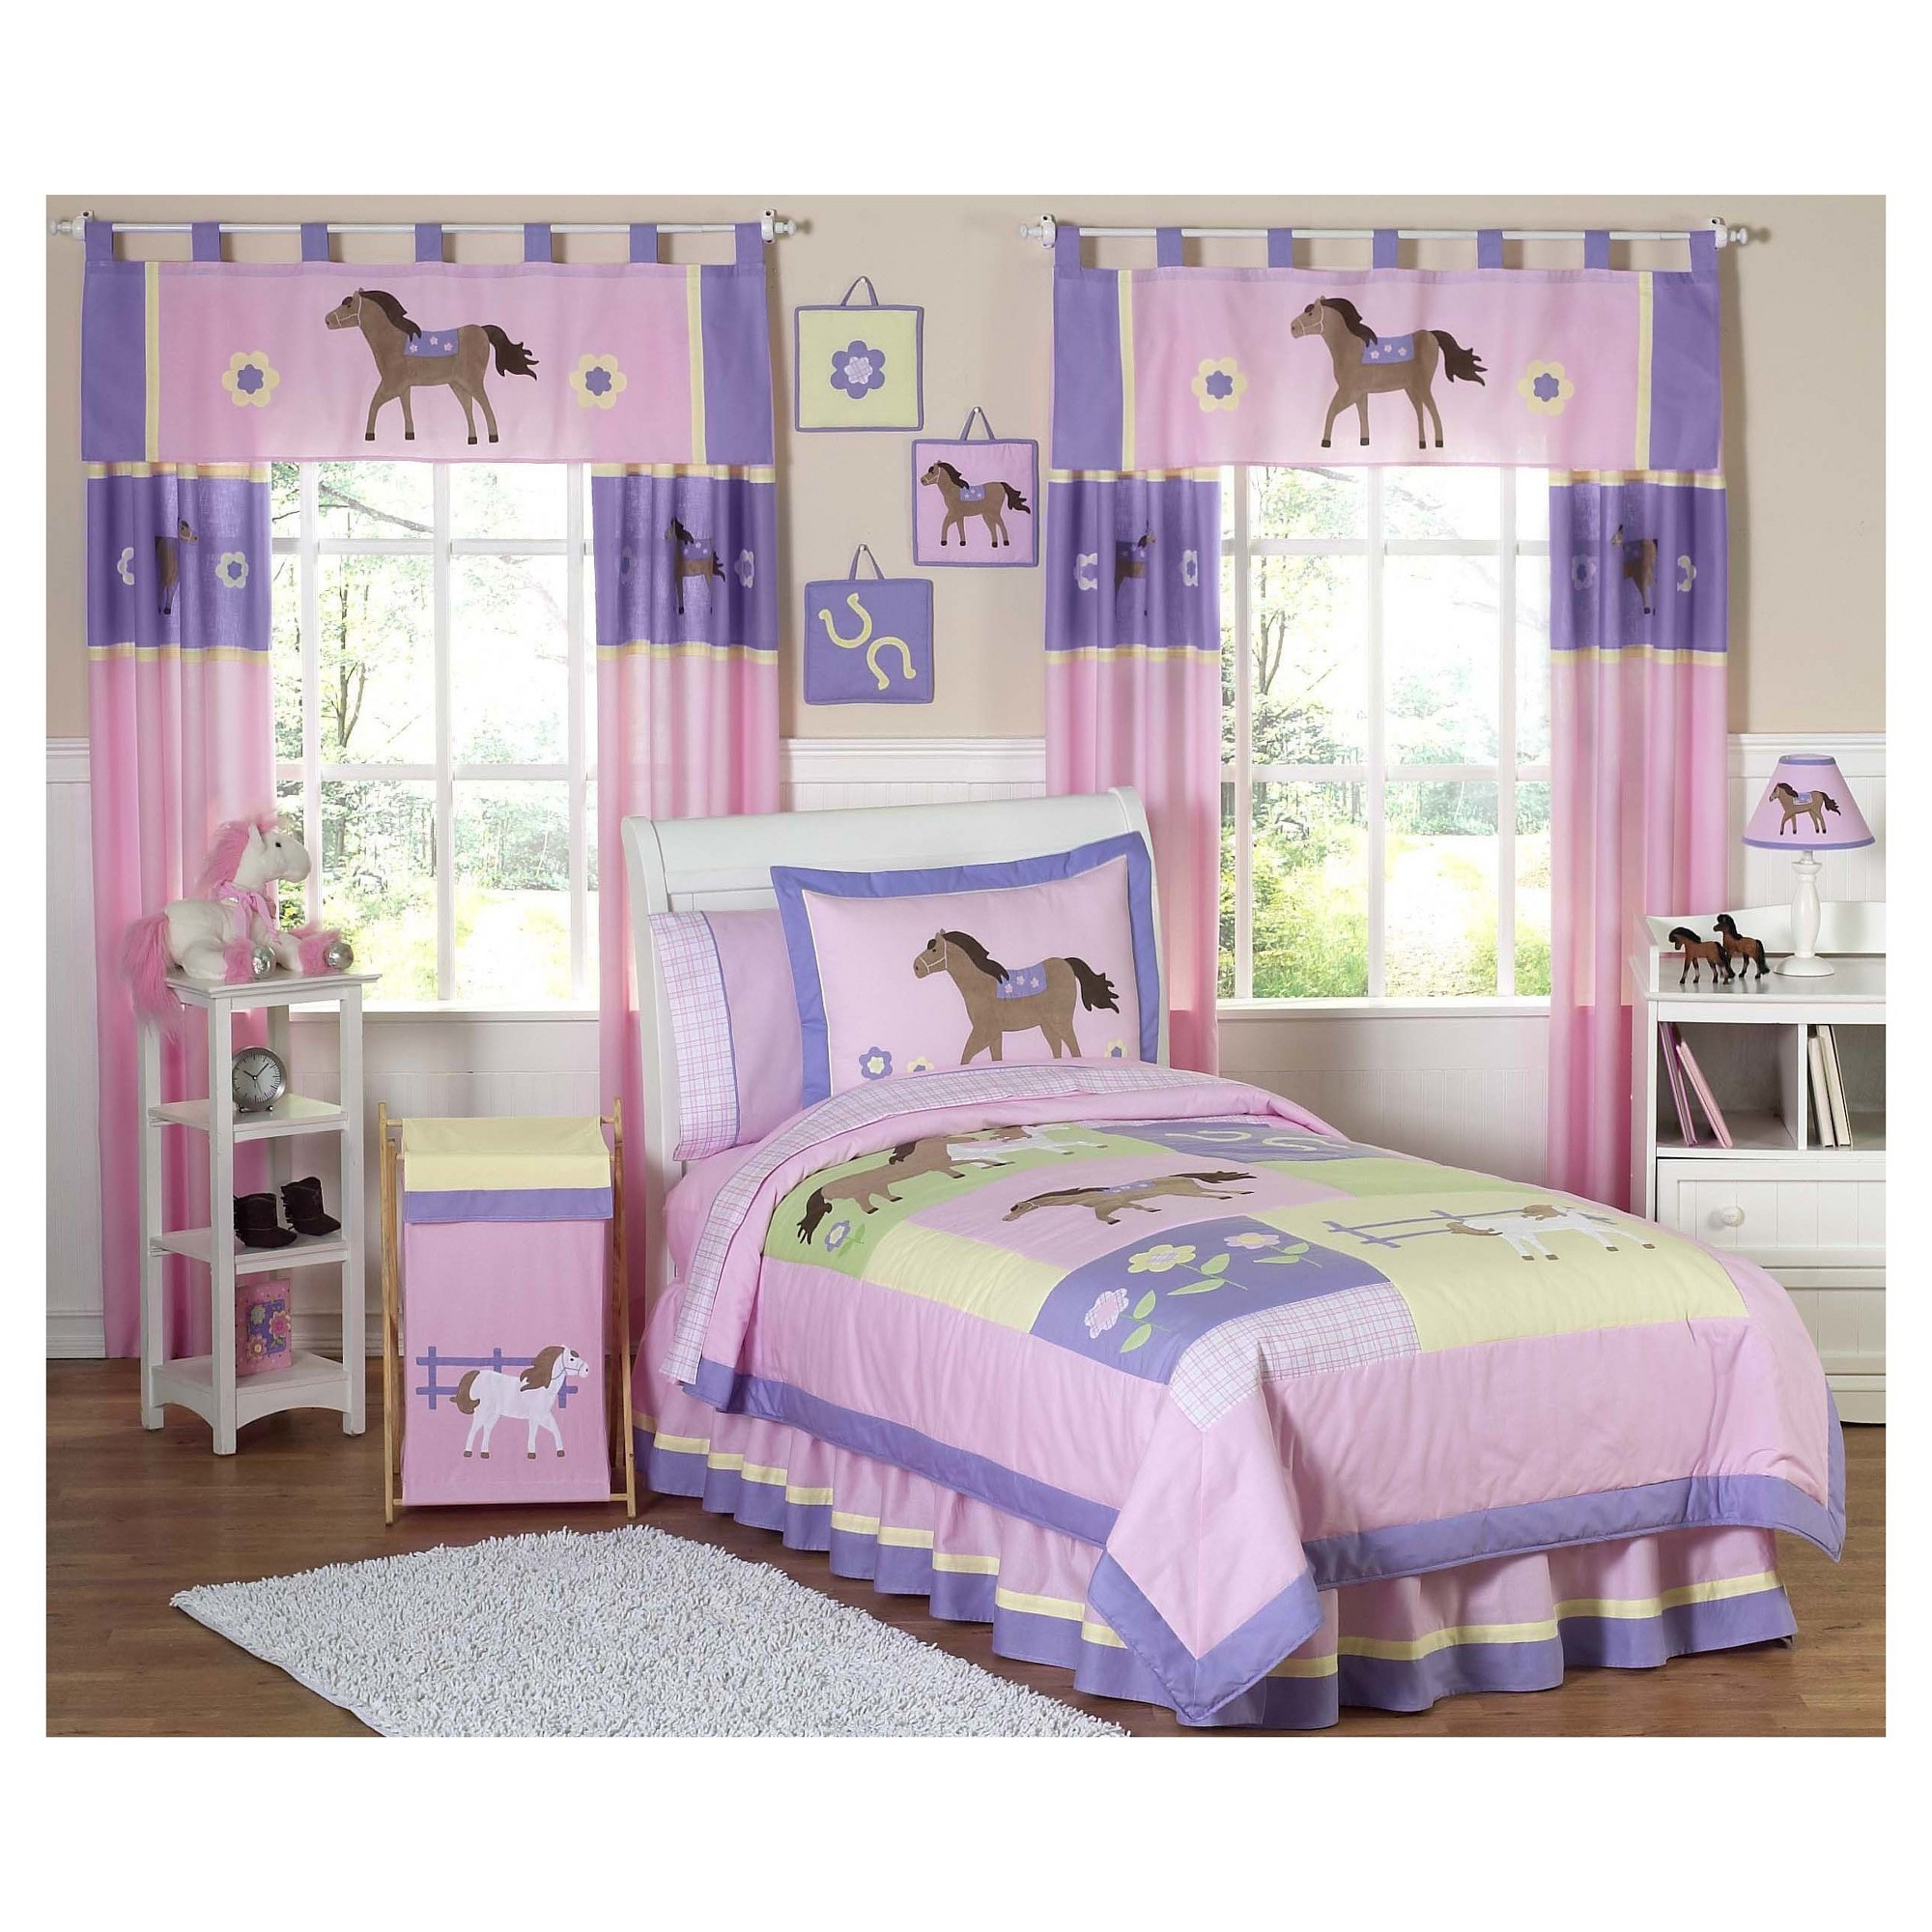 quilt how girls give fabulous comforter valance teal with horse lboaae me dk for first plus comforters bedding also your deluxe to